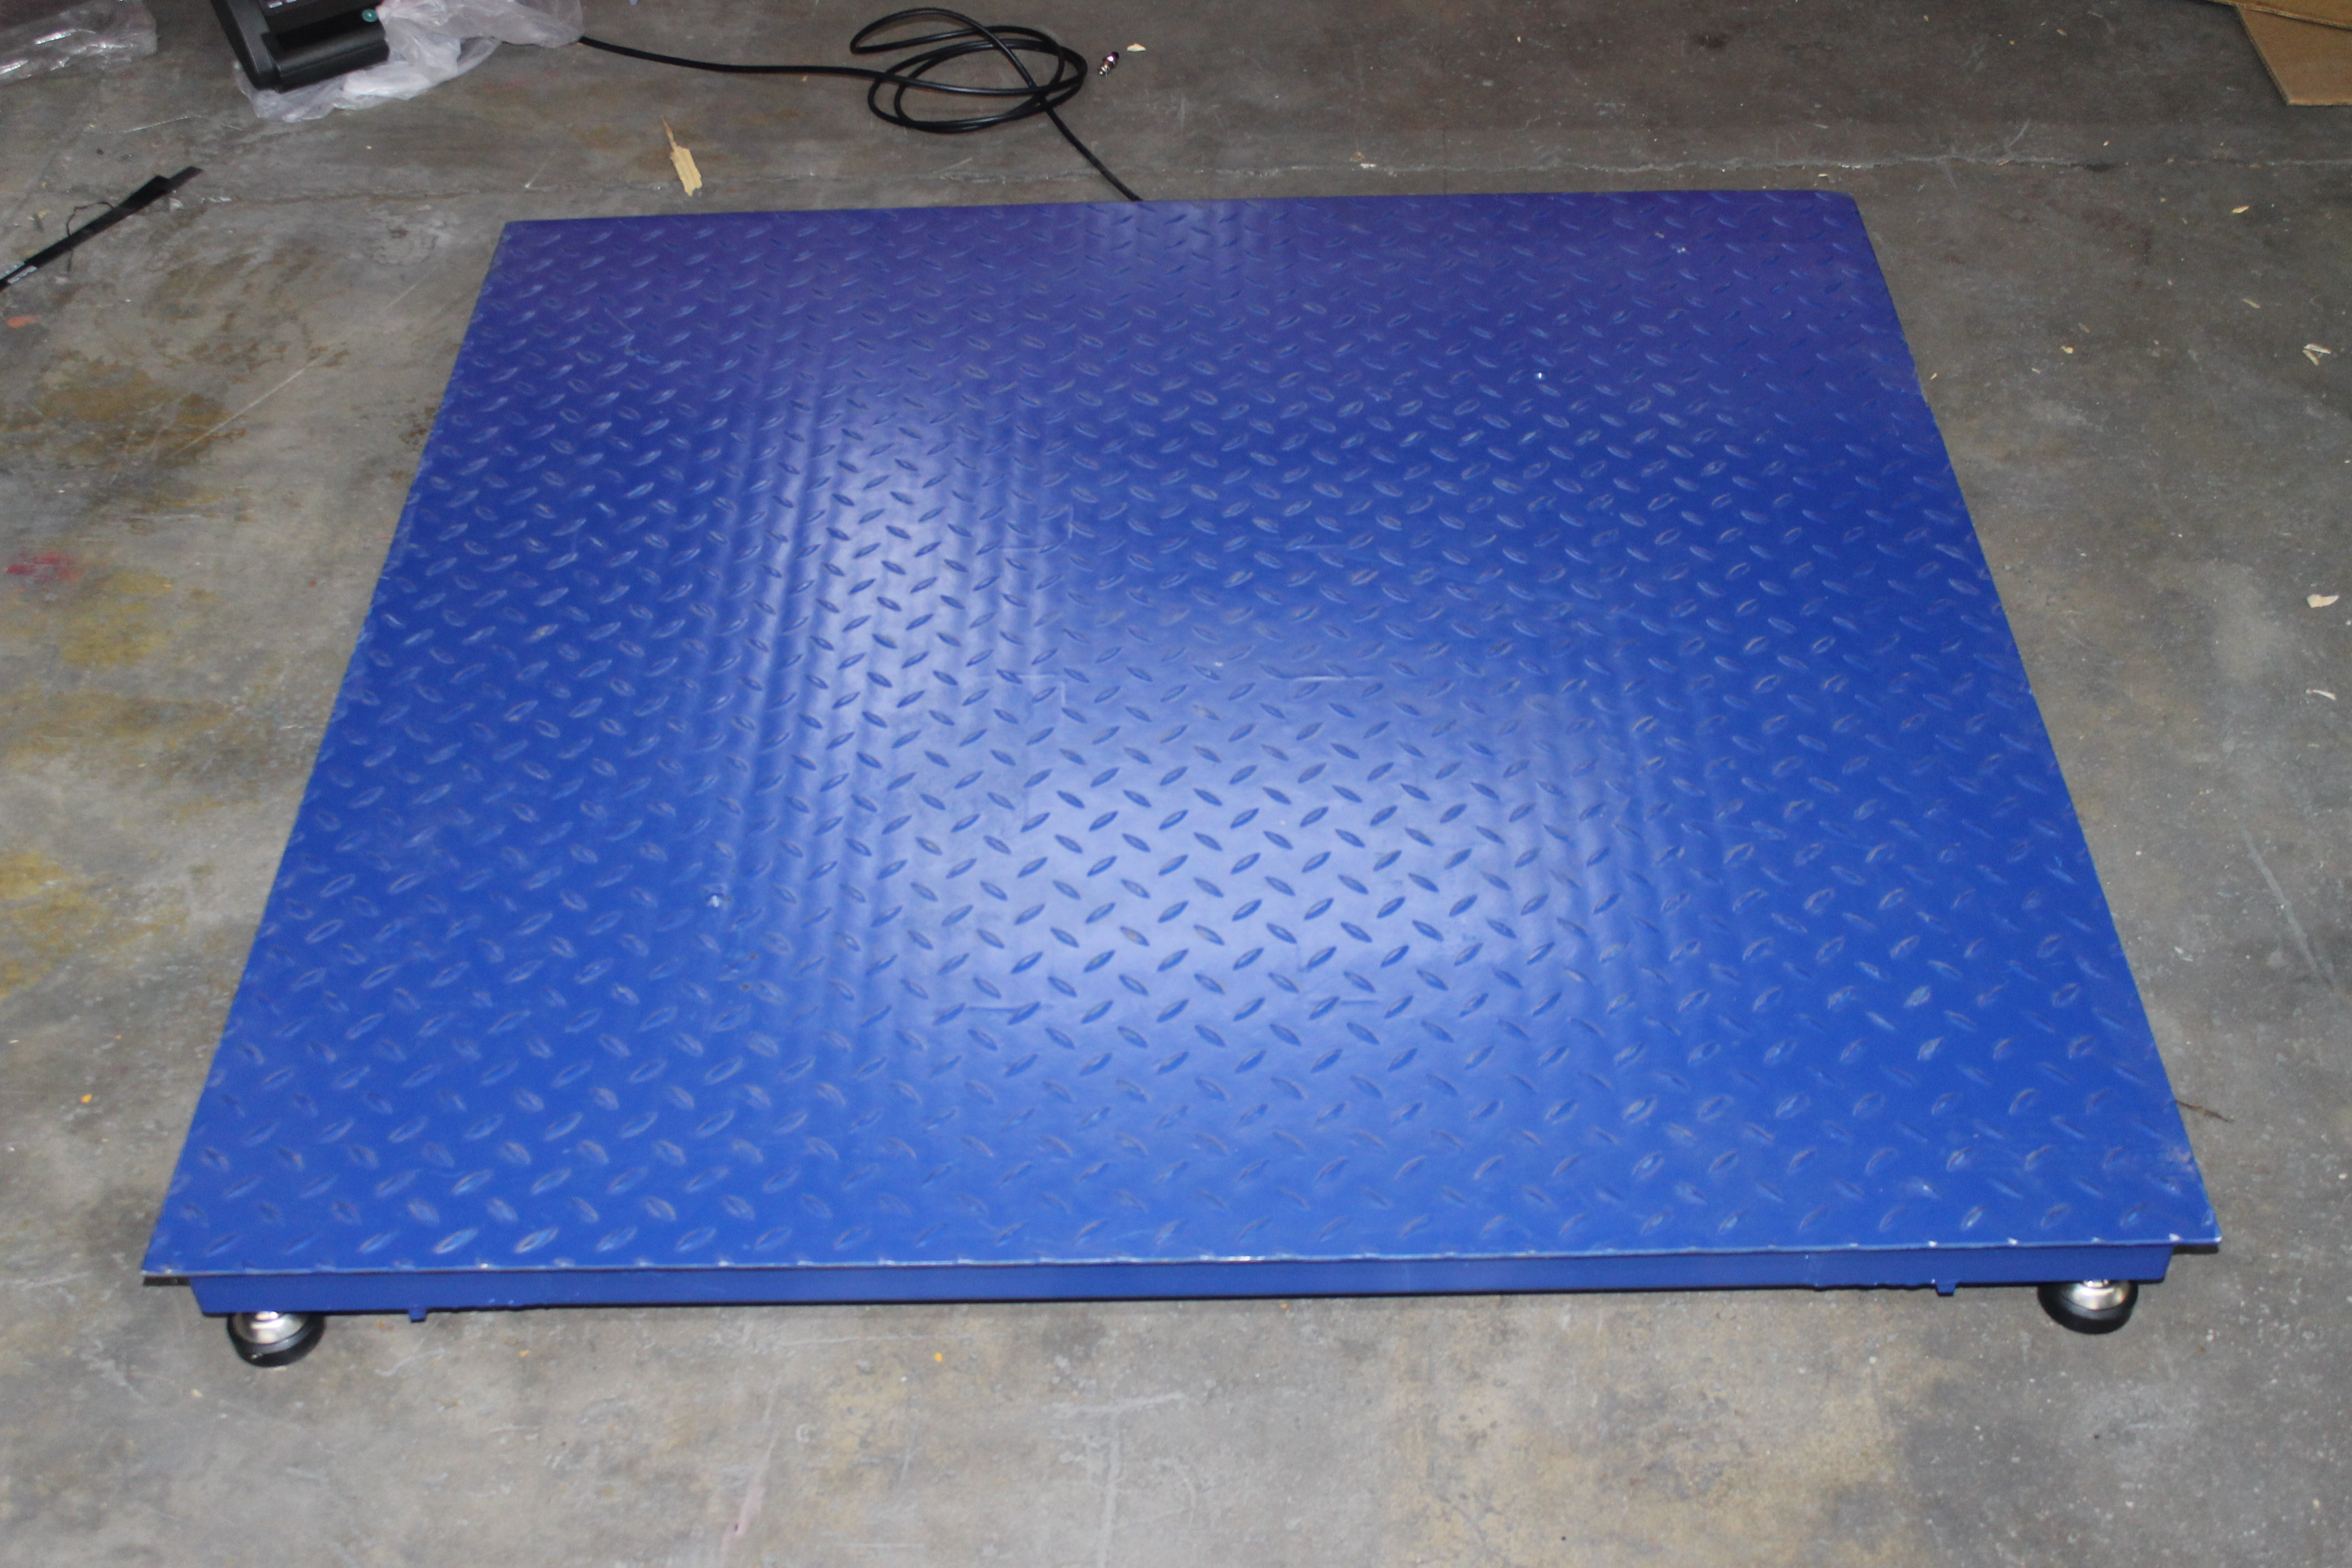 Lot 12 - 5000 LB CAP PALLET FLOOR SCALE WITH BATTERY POWERED DISPLAY